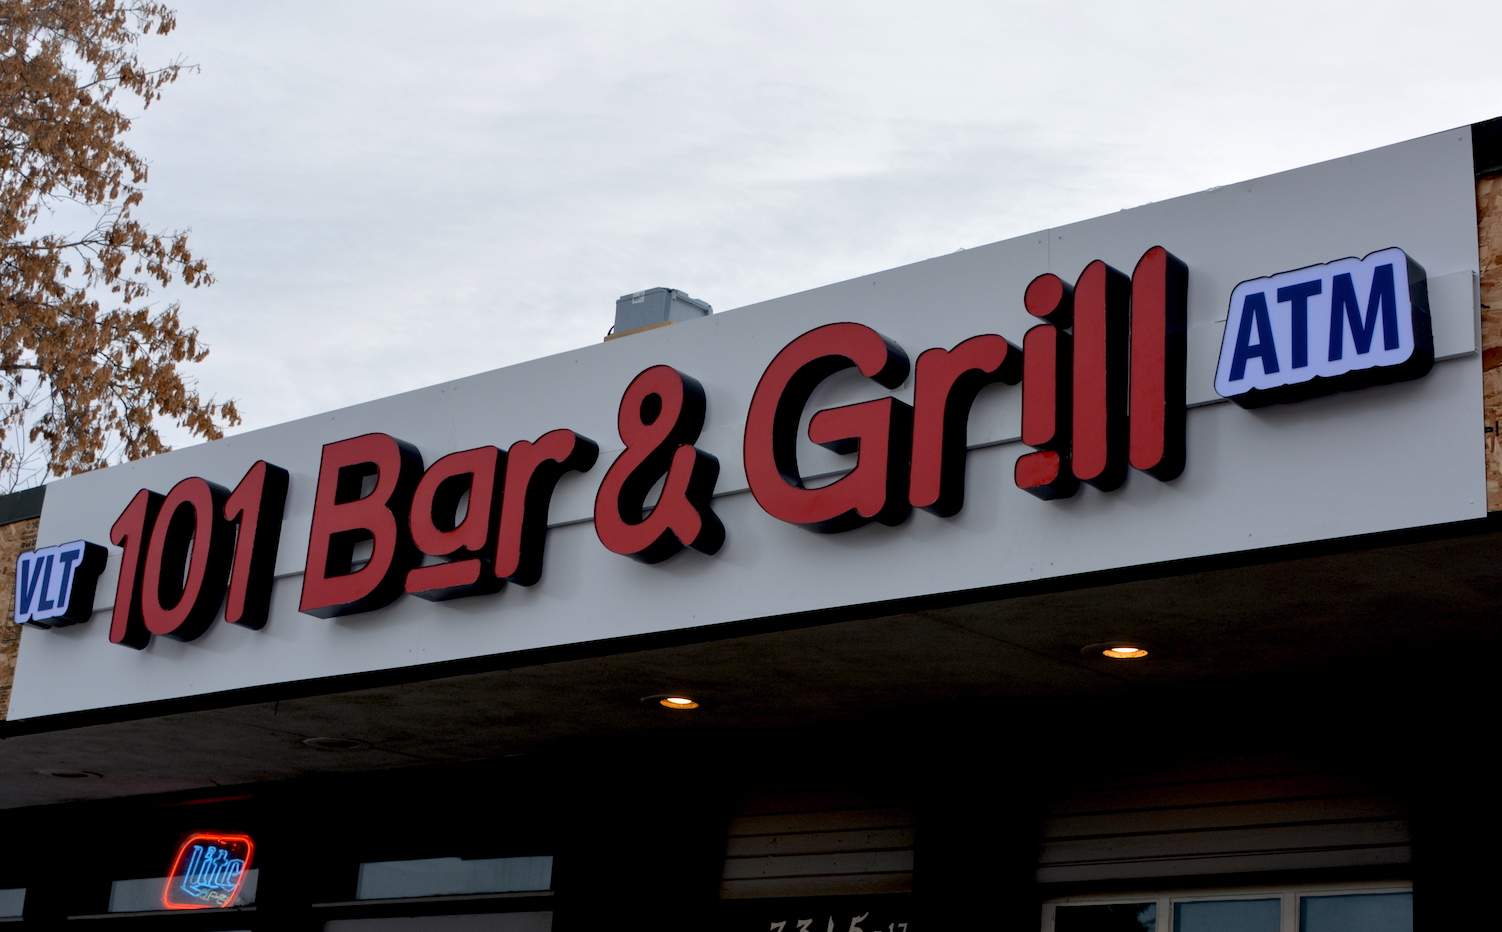 Channel Letters - 101 Bar & Grill by LED Pros